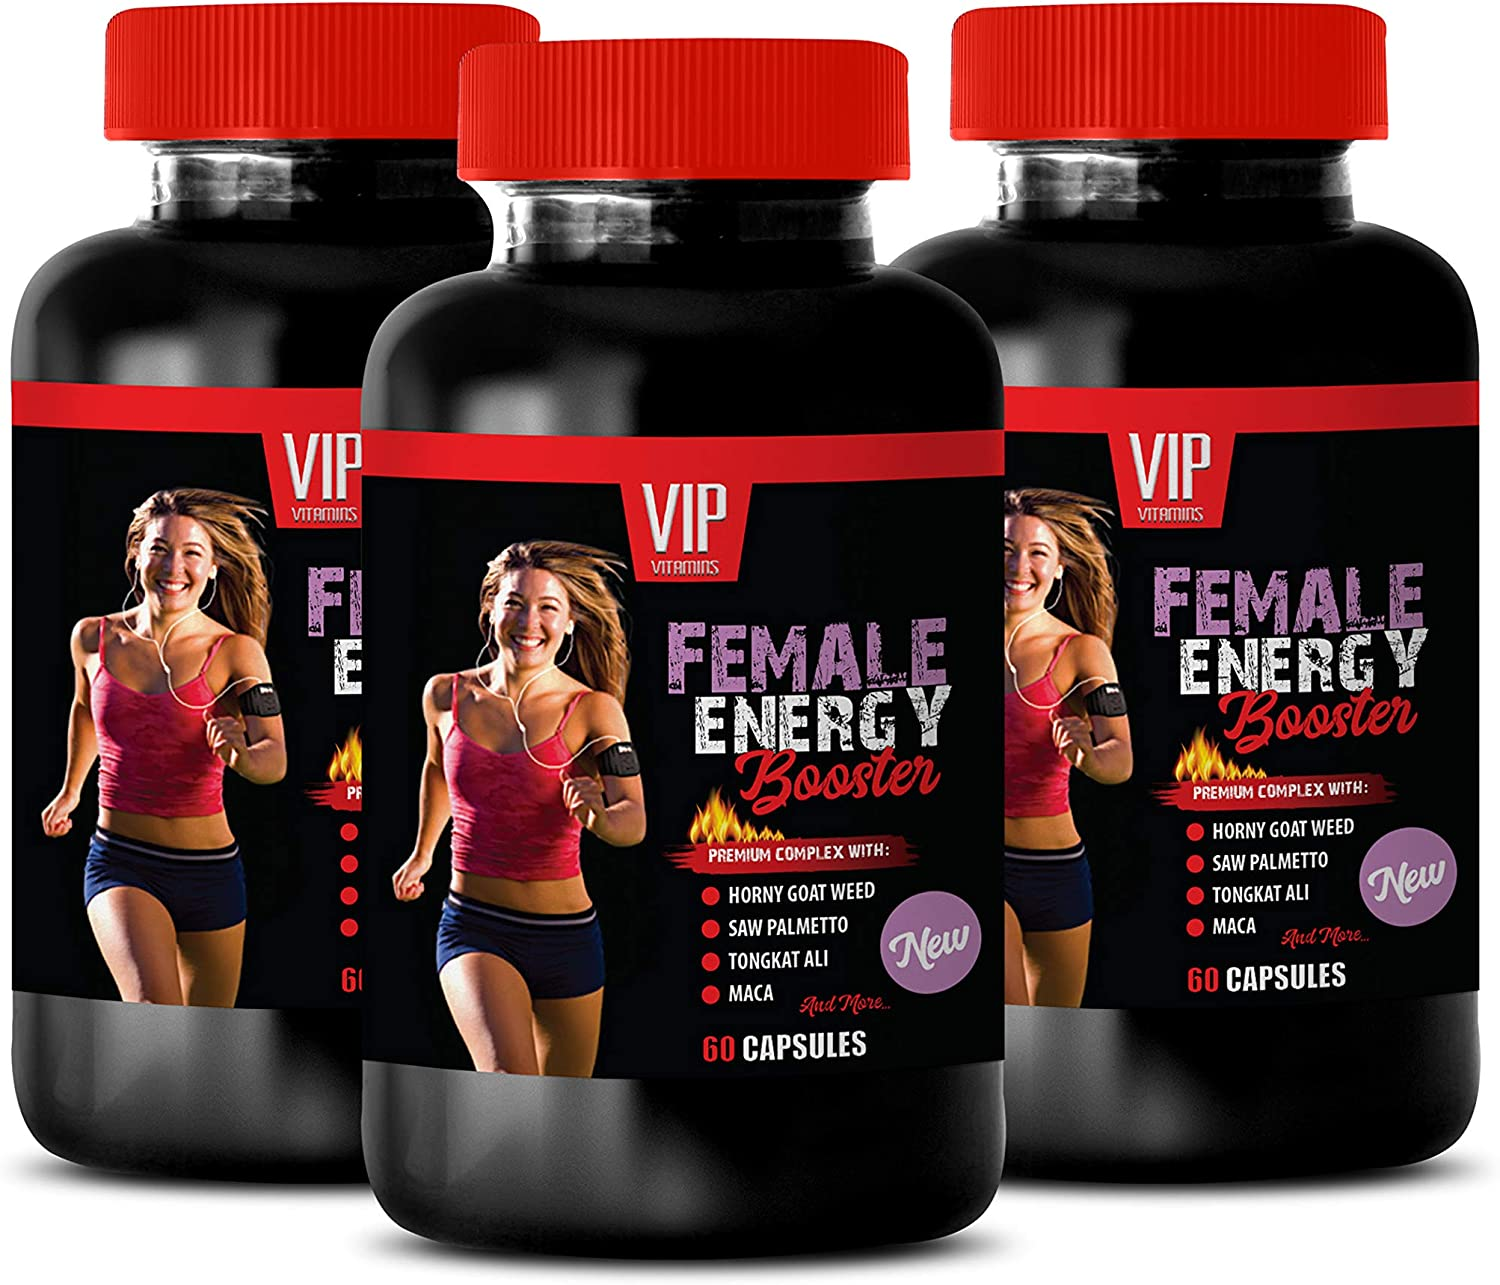 Menopause Relief Supplement - Female Energy Complex Memphis Mall In Booster OFFicial store